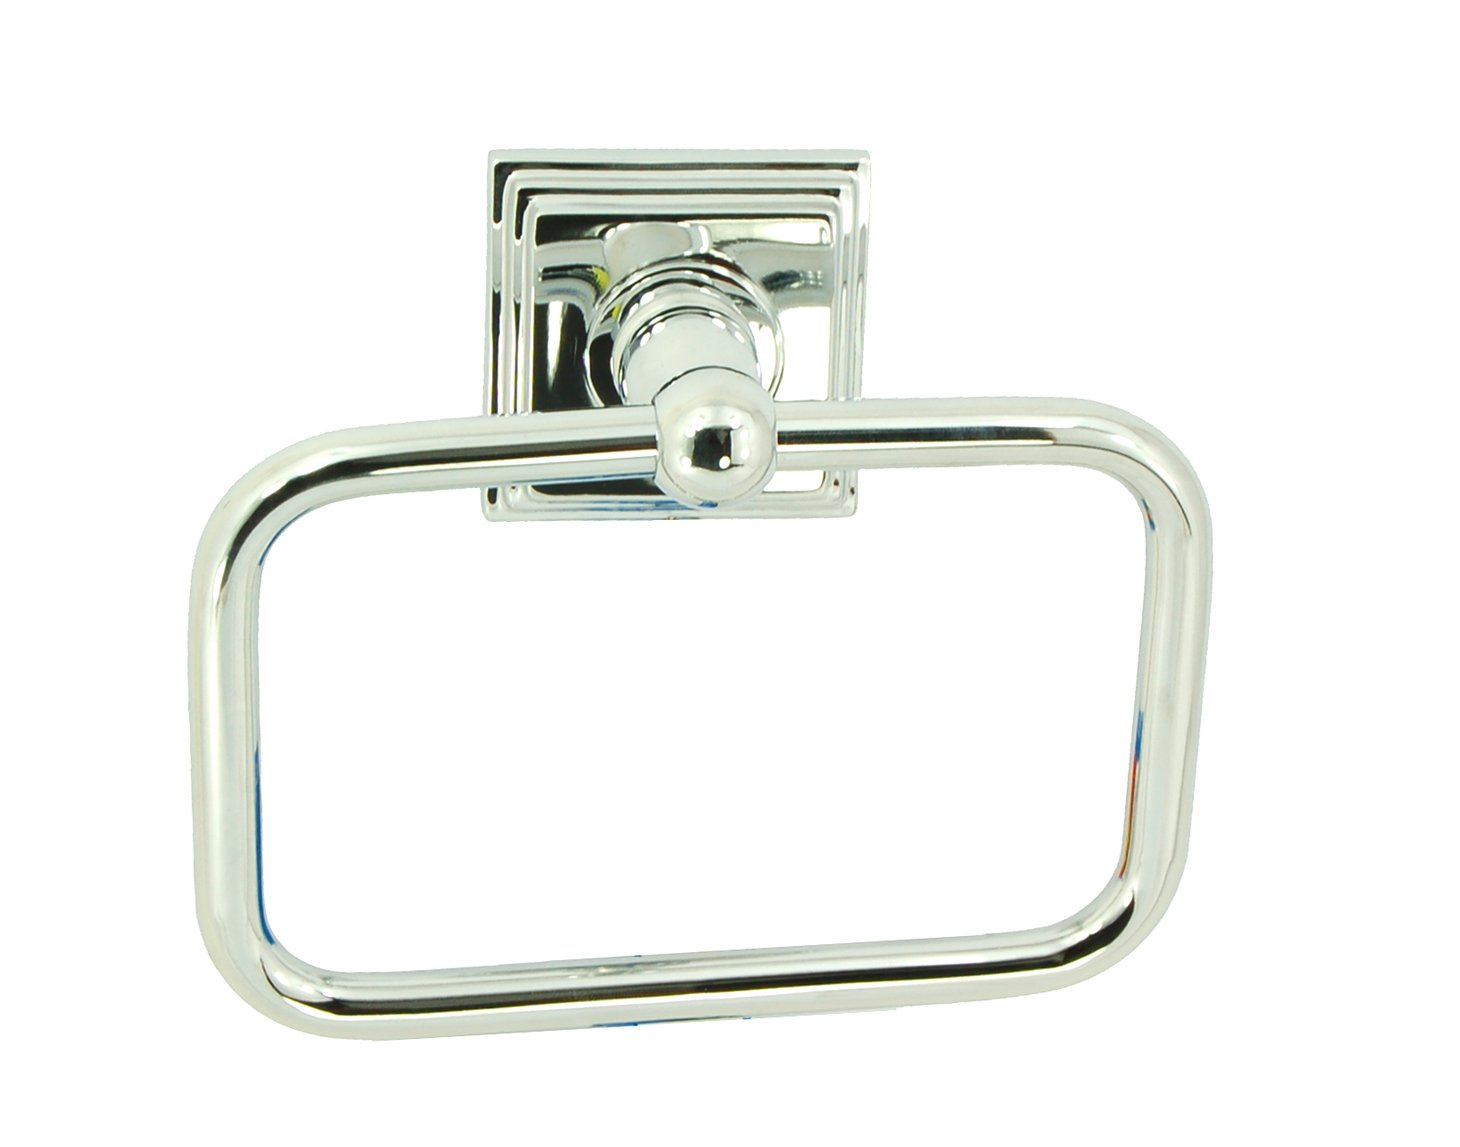 Better Home Products Union Square Towel Ring, Chrome